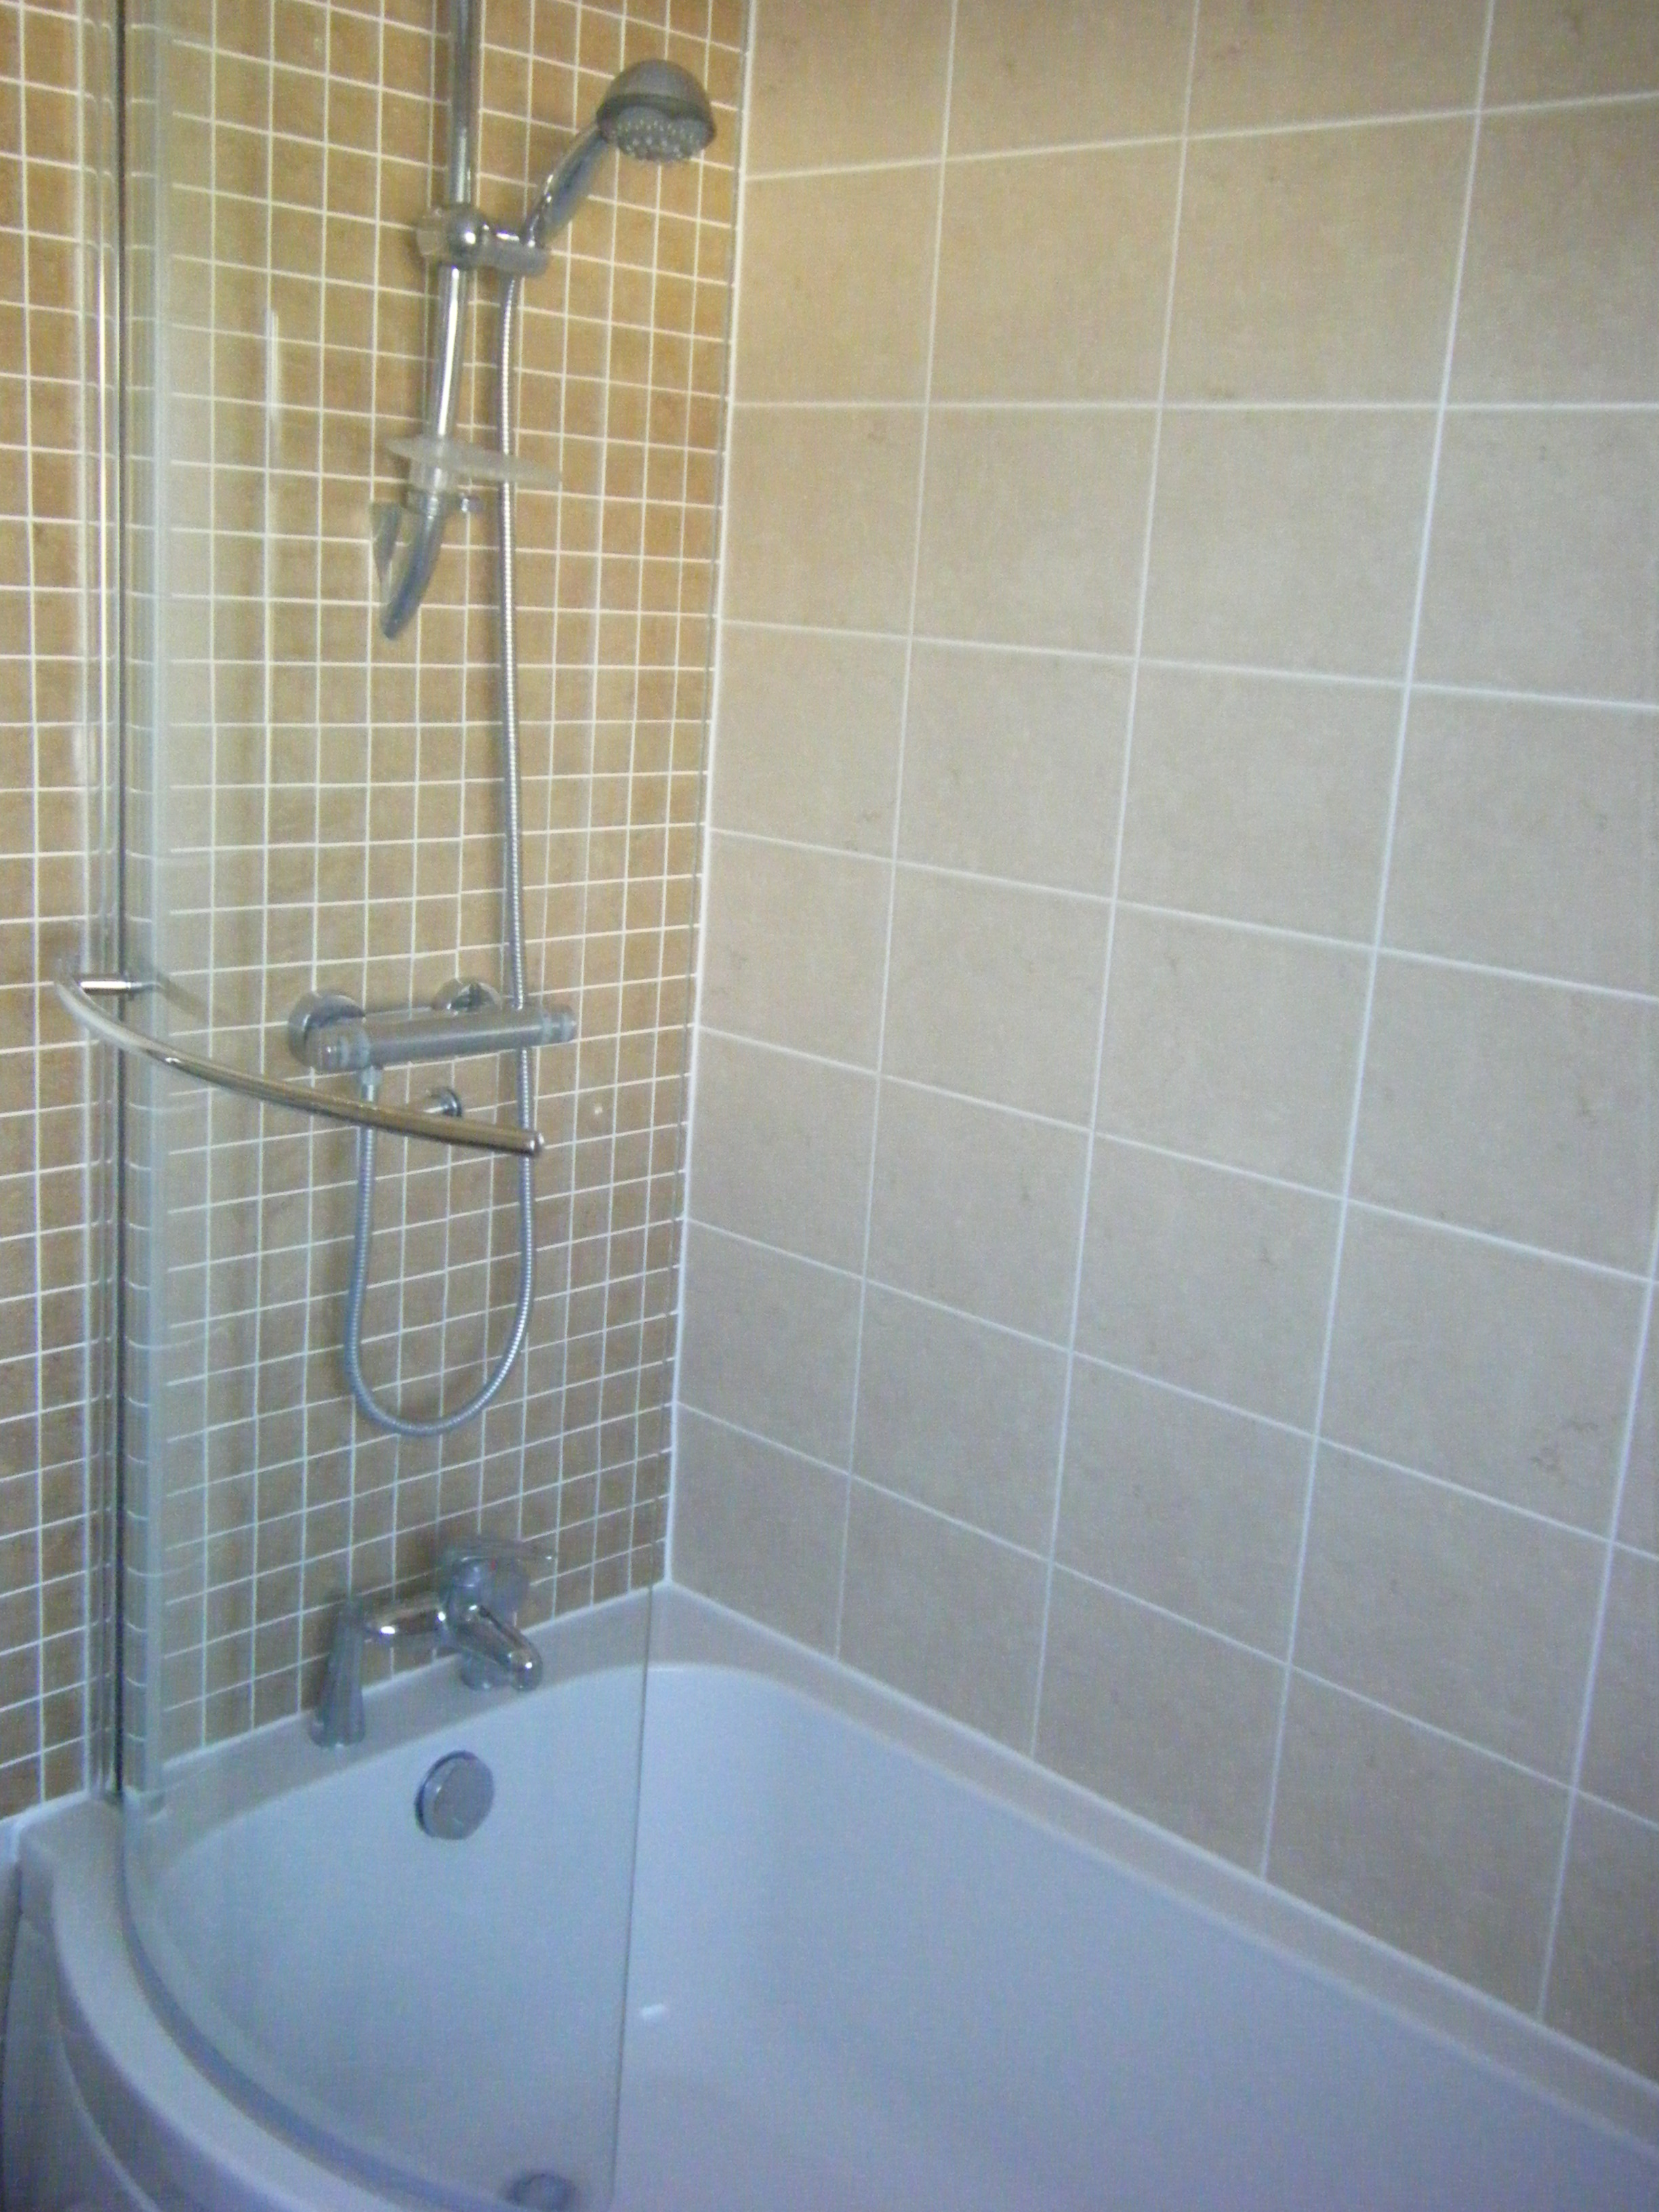 Bath and shower in small bathroom